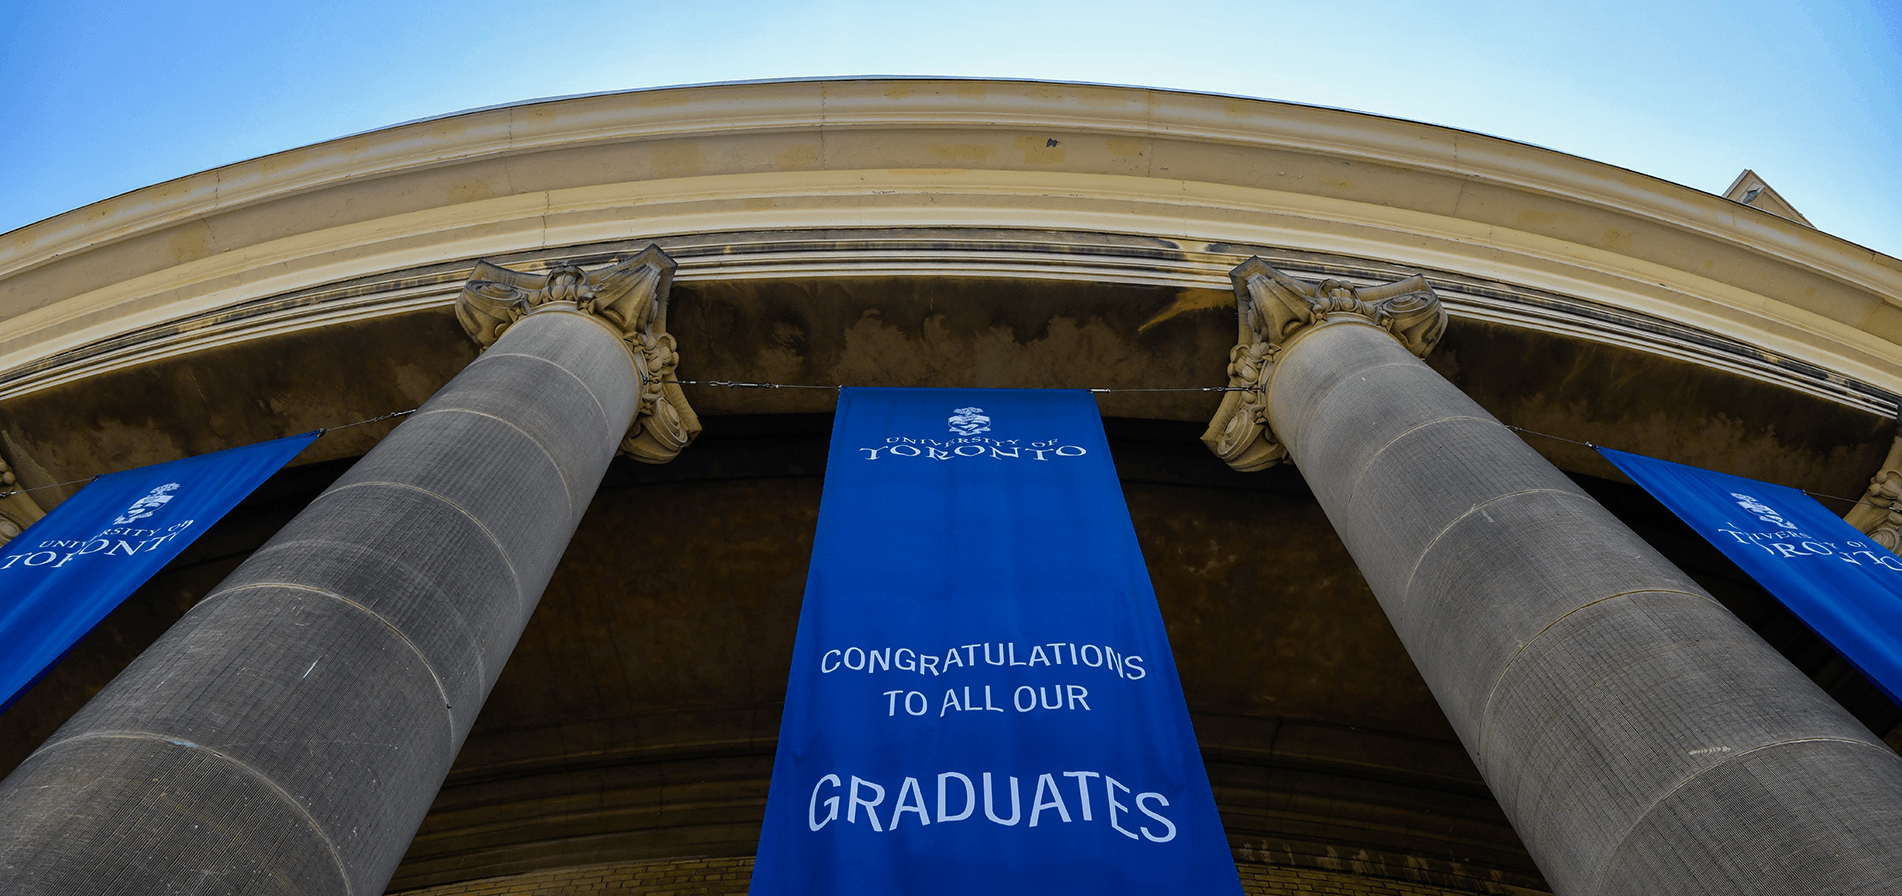 Banners hang from Convocation Hall.